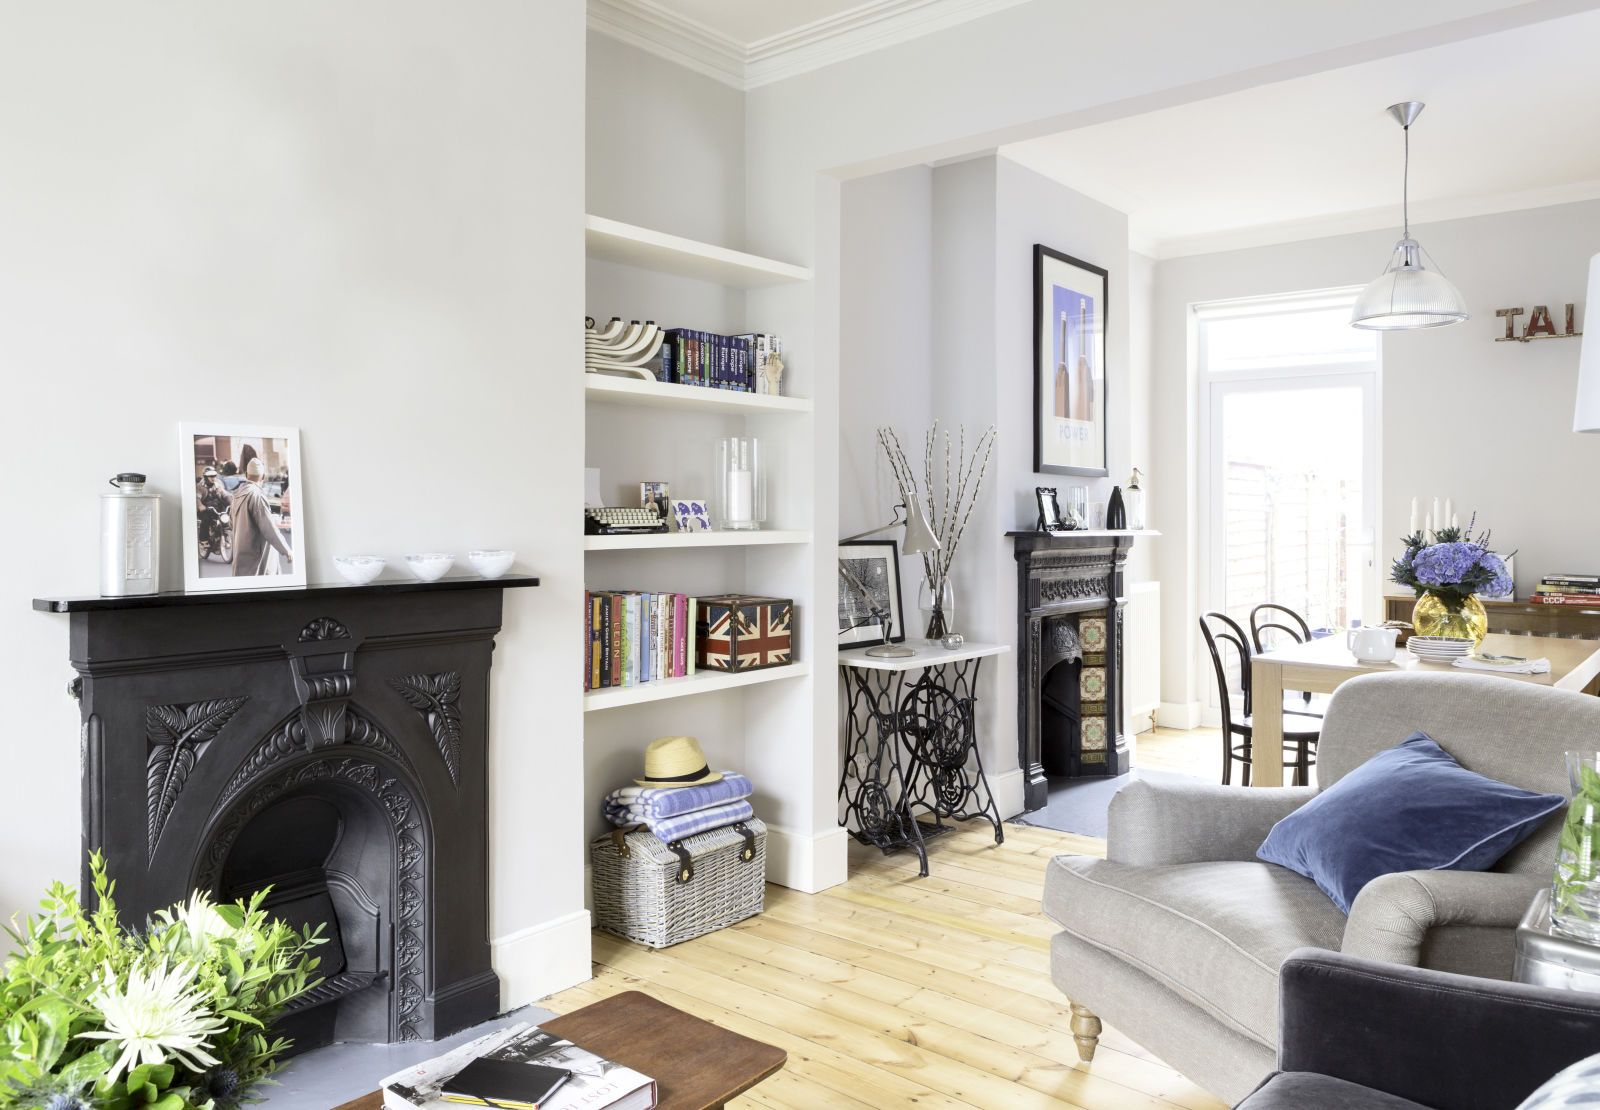 For less than £40000 this victorian terraced home has been completely modernised and updated